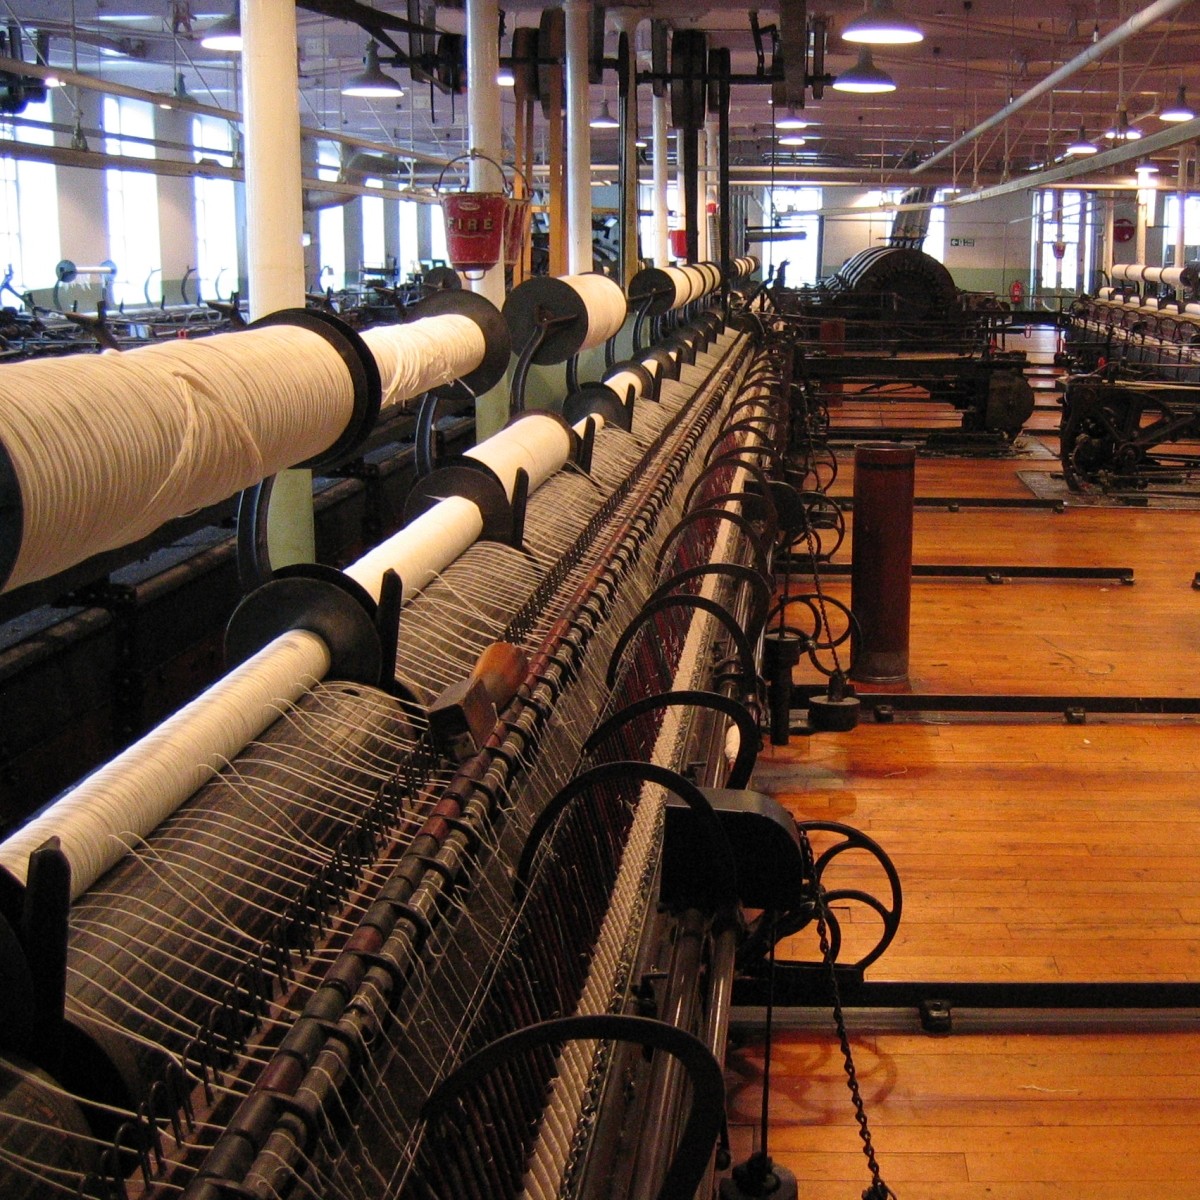 Textile Industry of MP demands exemption in fixed charges of electricity tariffs